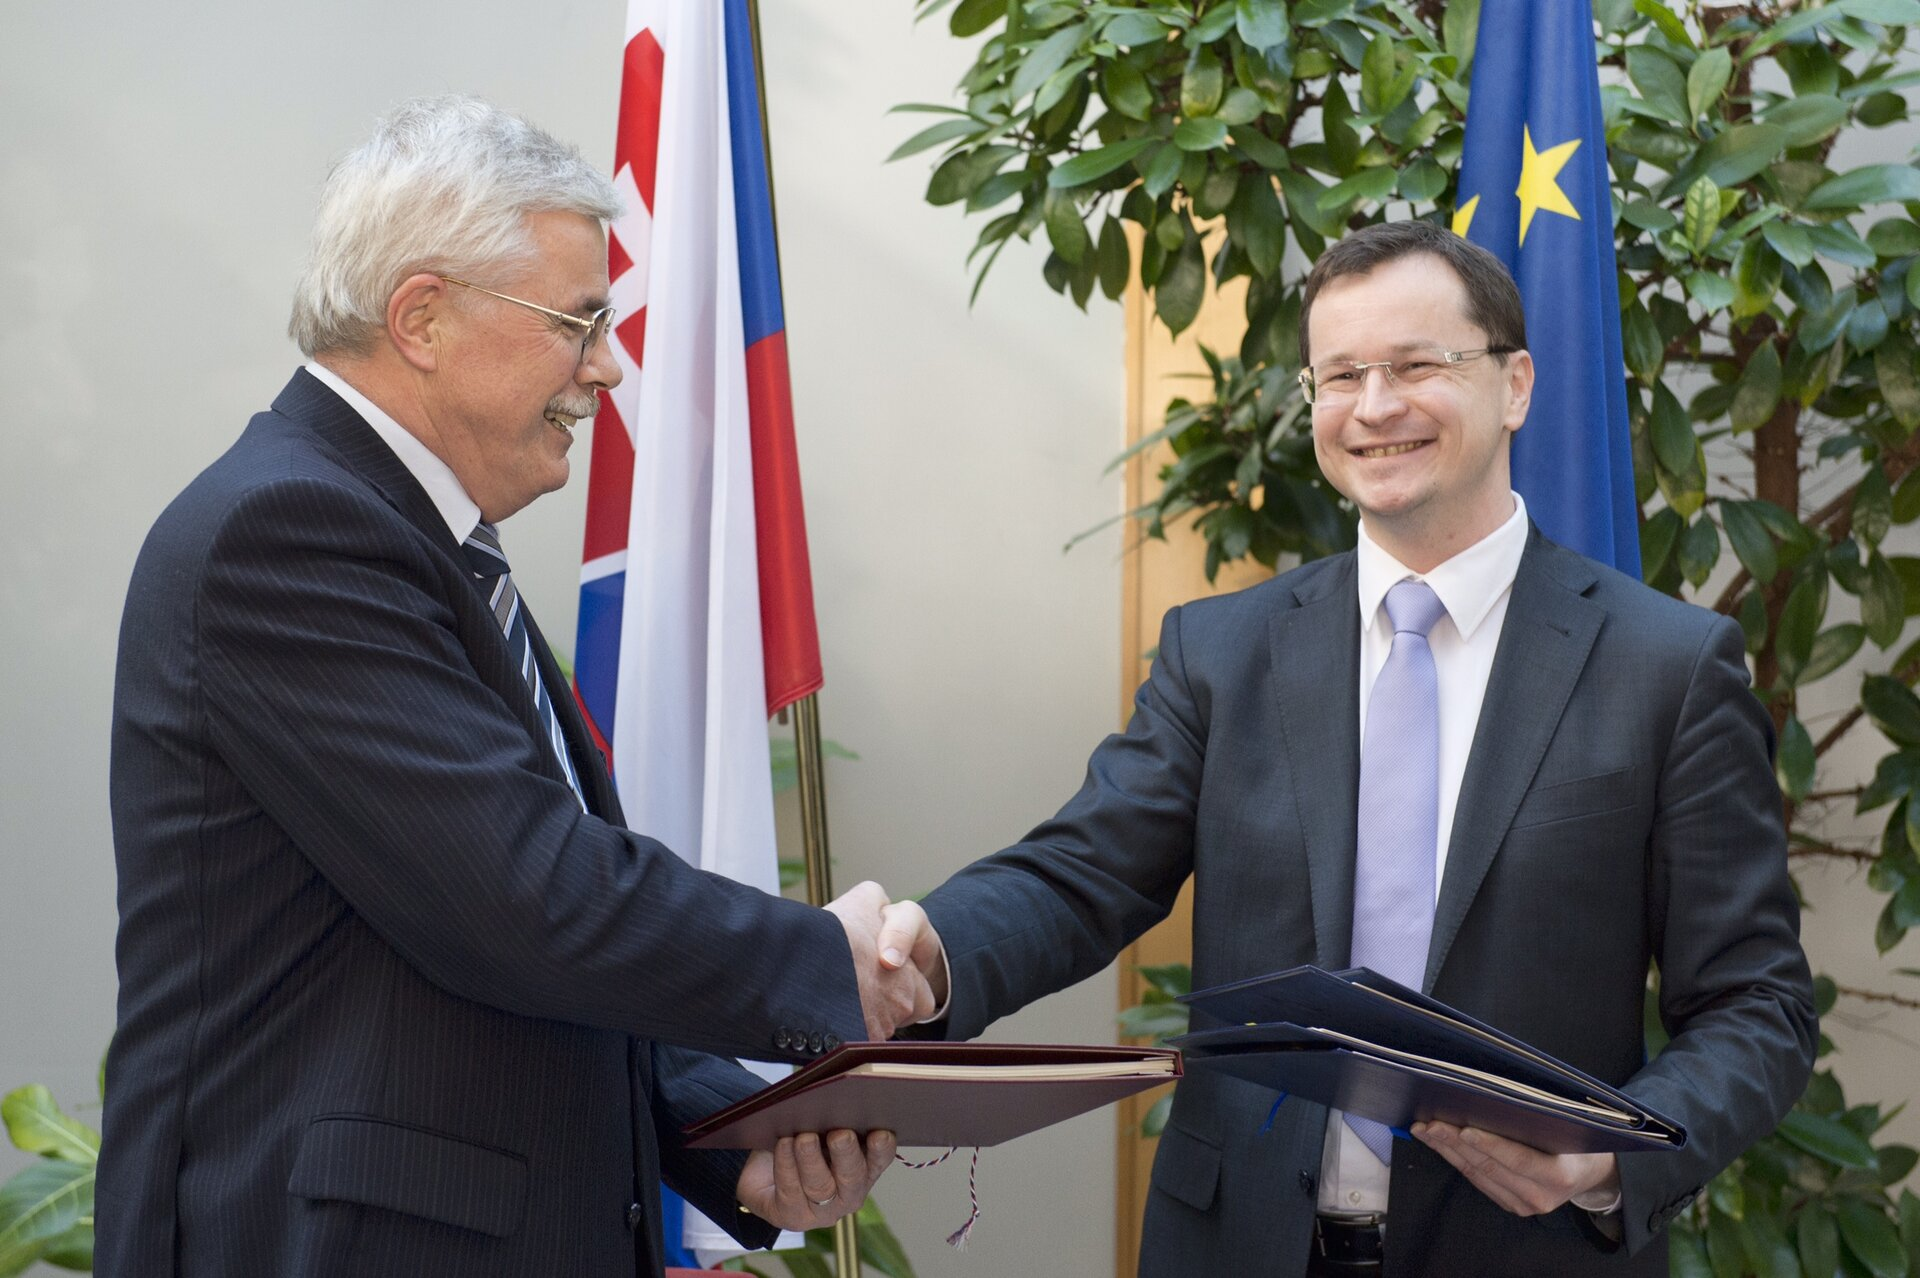 Signing ceremony of ECS Agreement in Slovakia